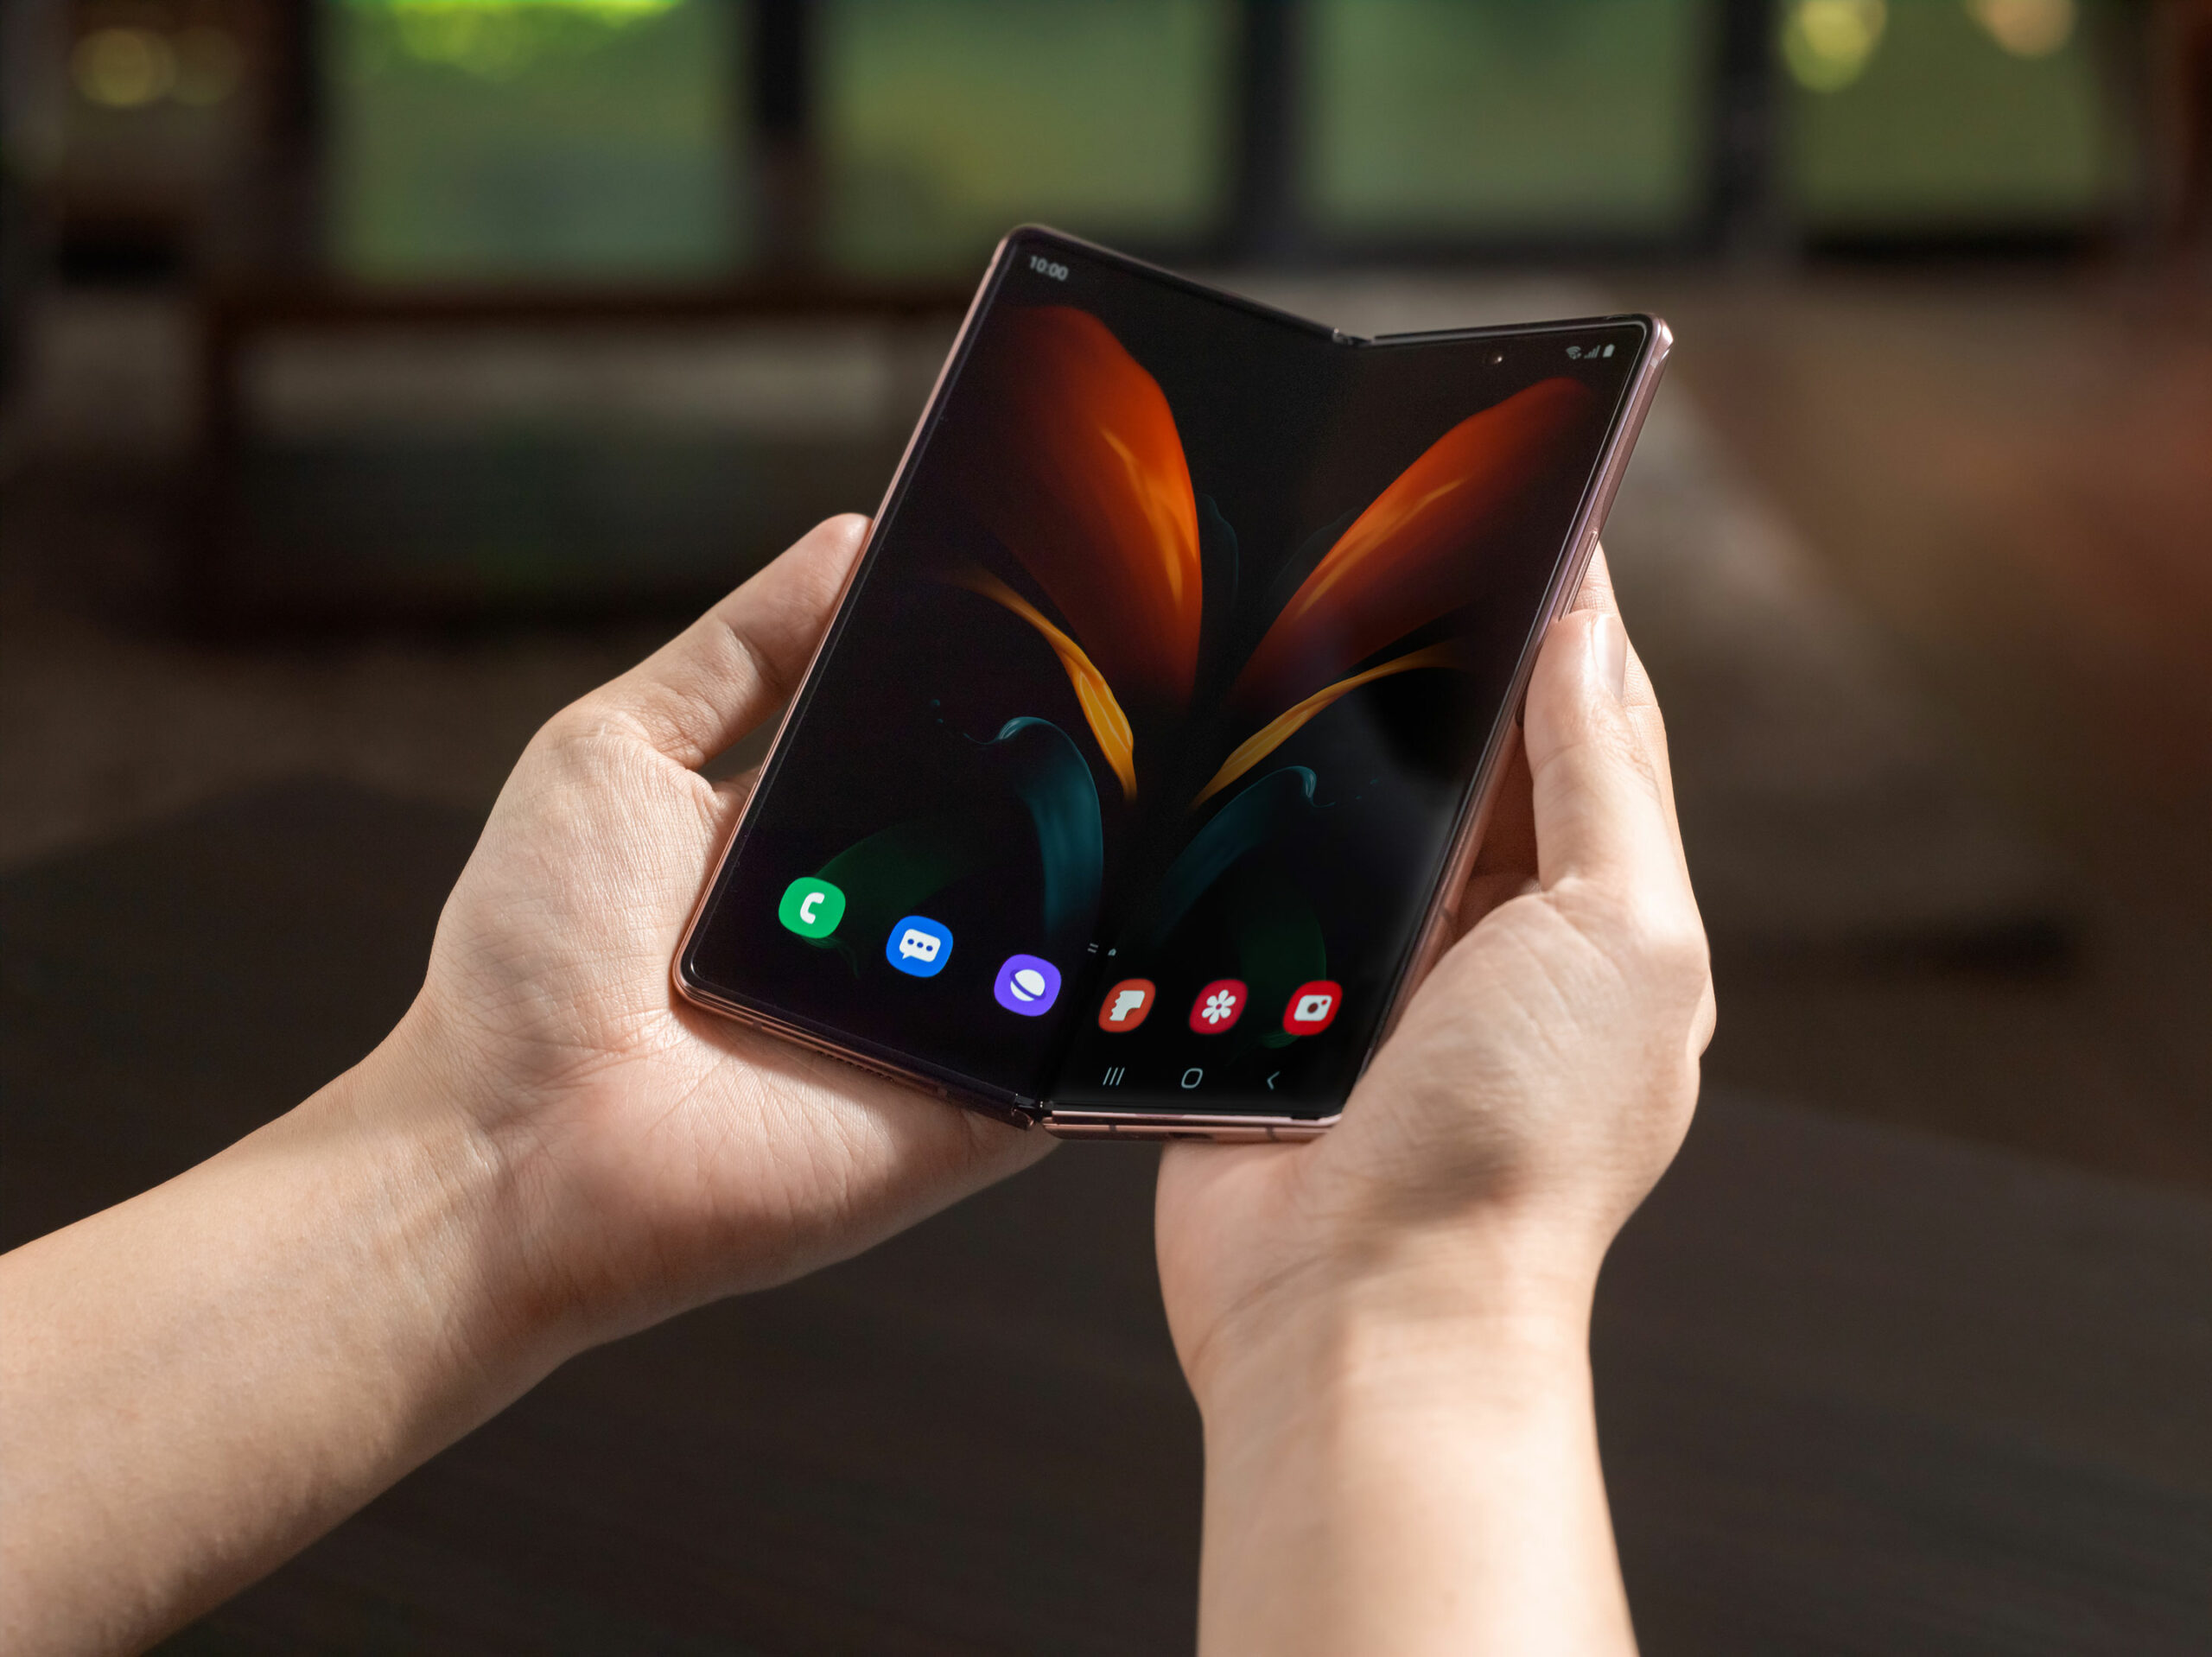 Galaxy Z Fold 2 being held